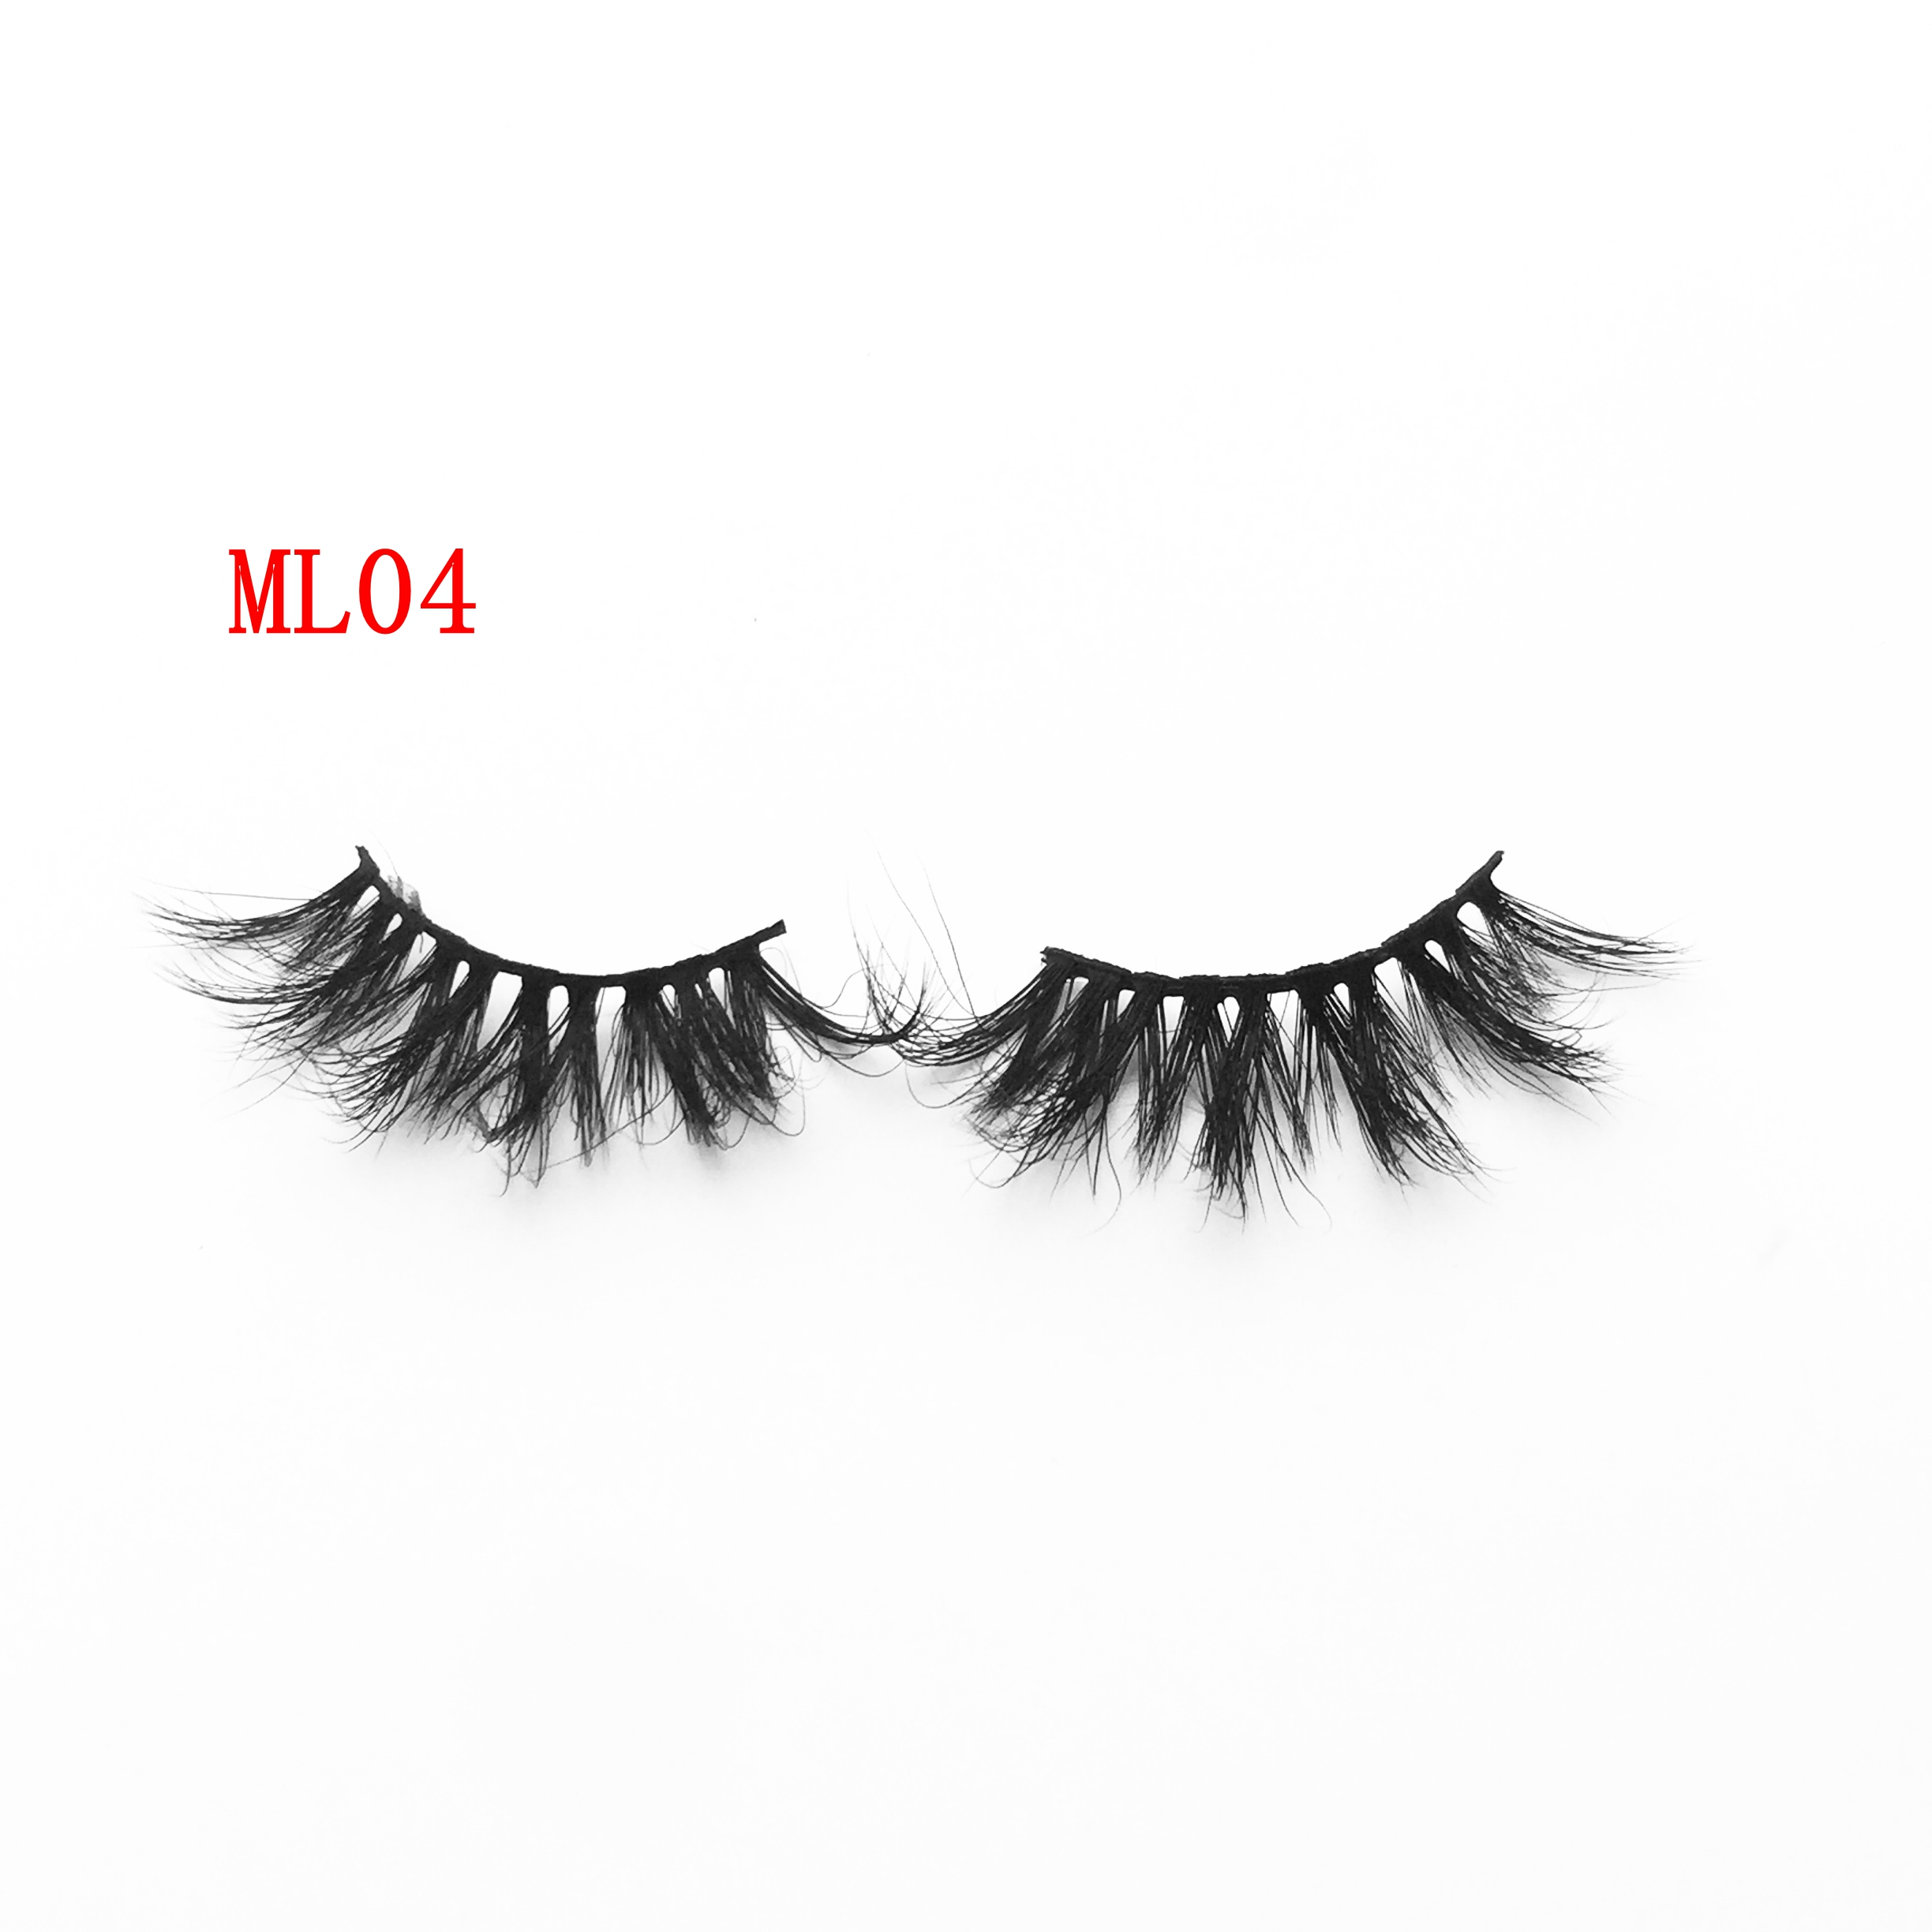 25mm mink <strong>3</strong> d eyelashes with OEM package 100% real fur natural 5d mink strip lashes custom logo package